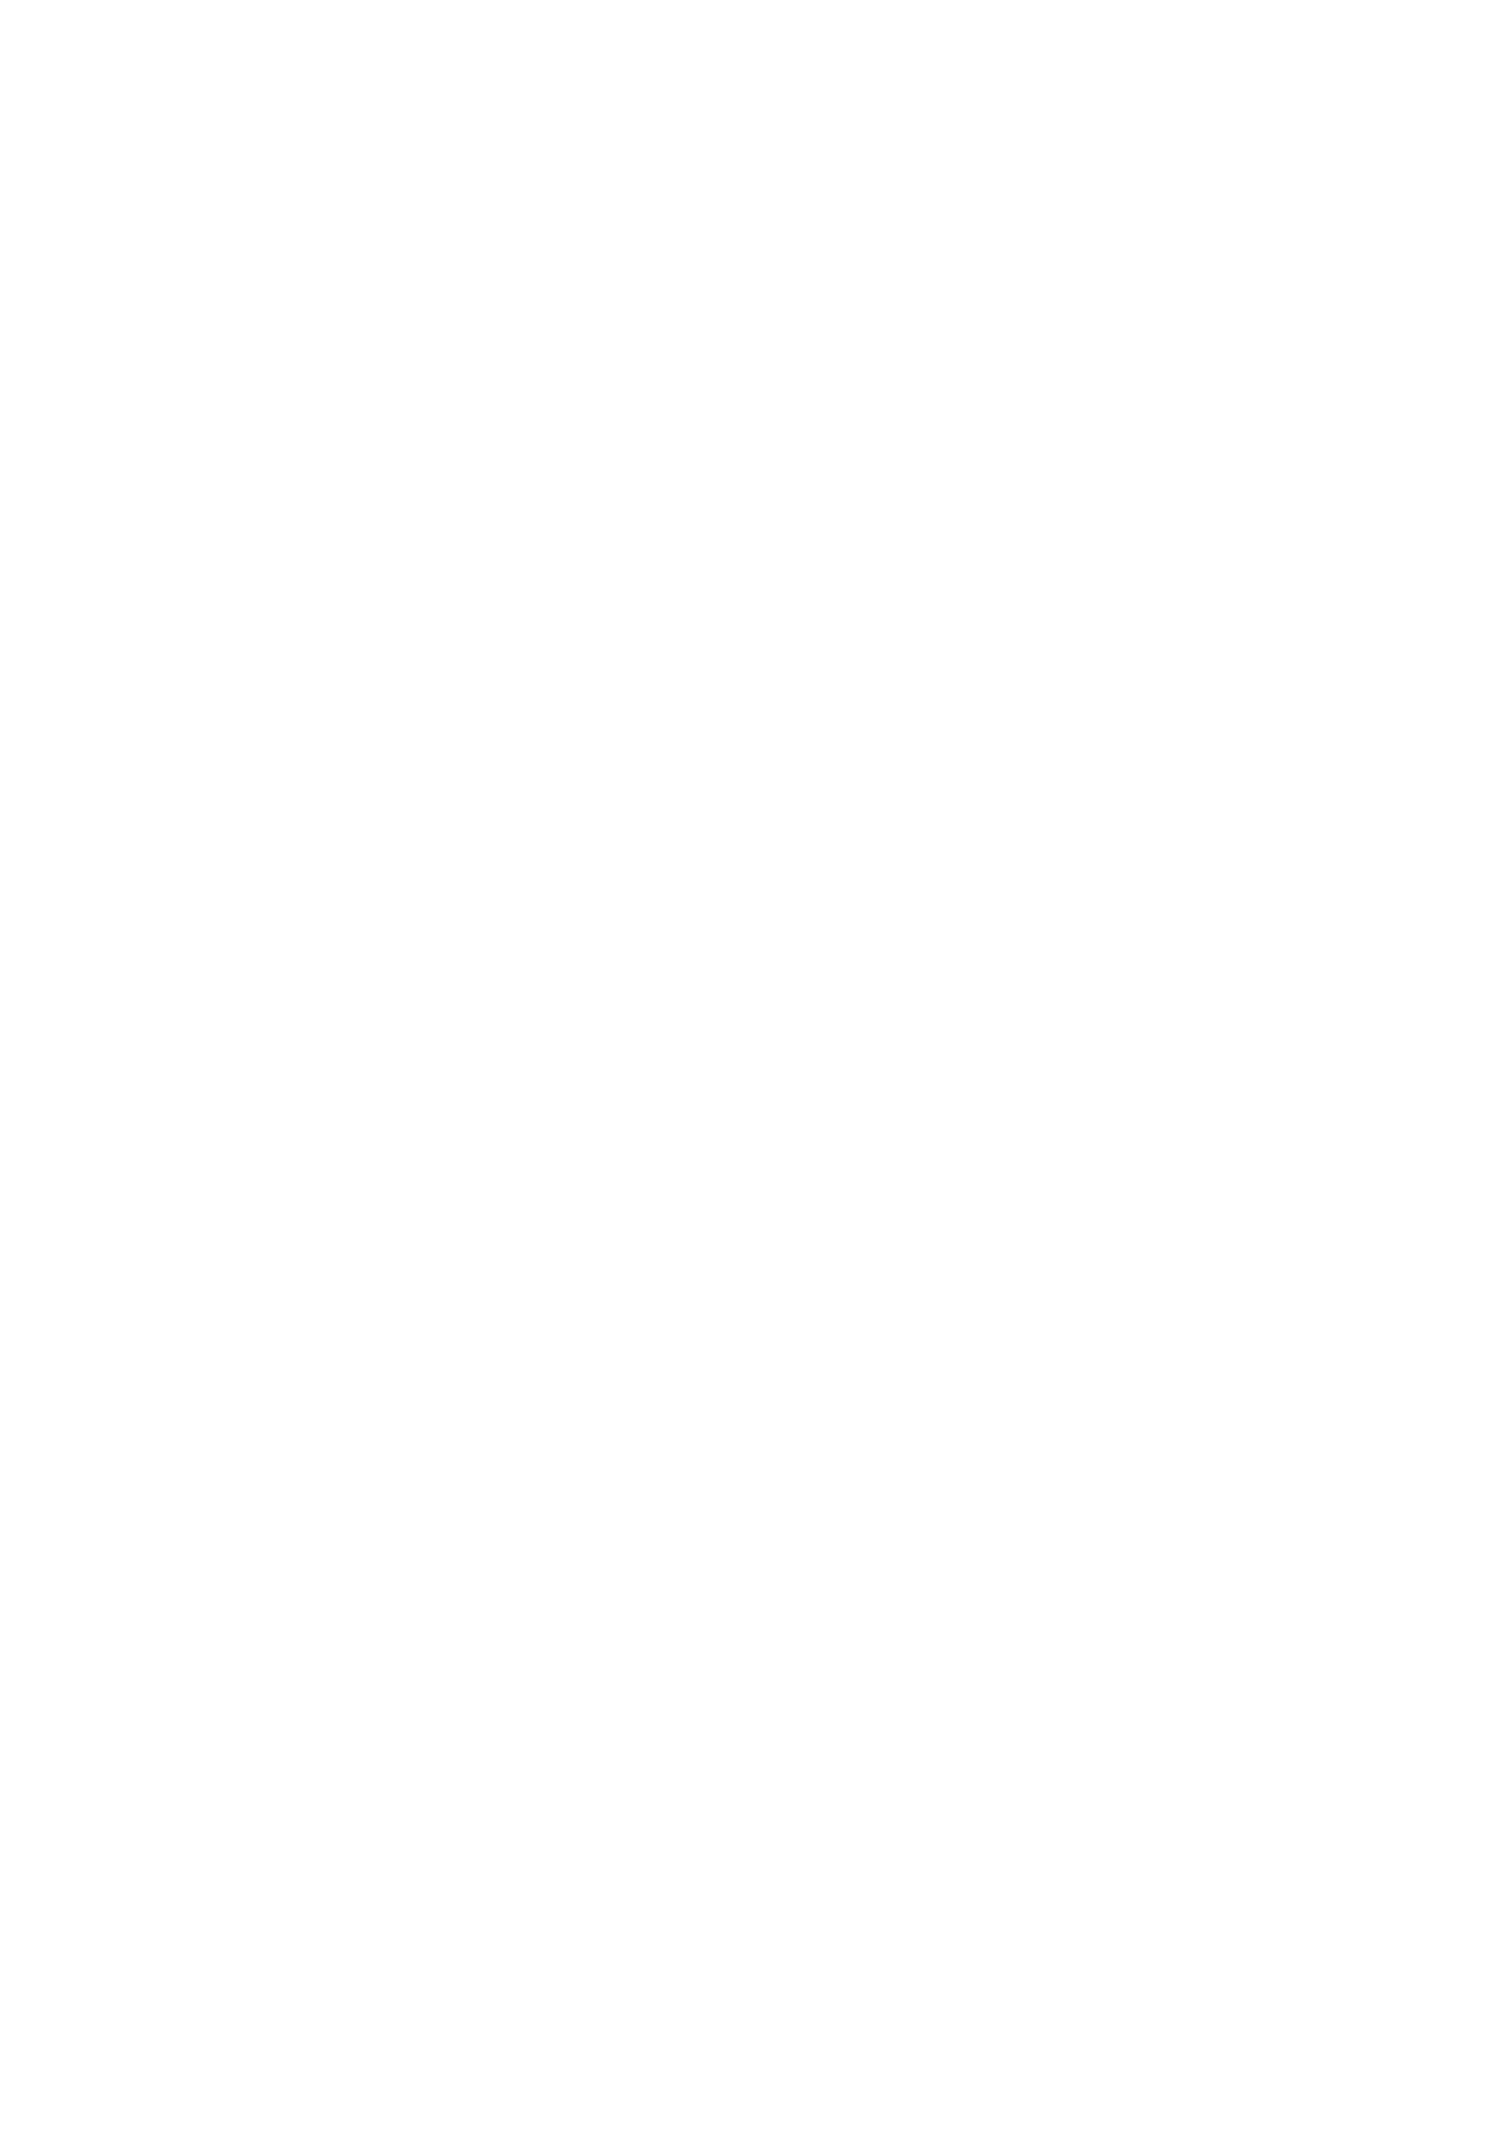 Mango Militia Productions